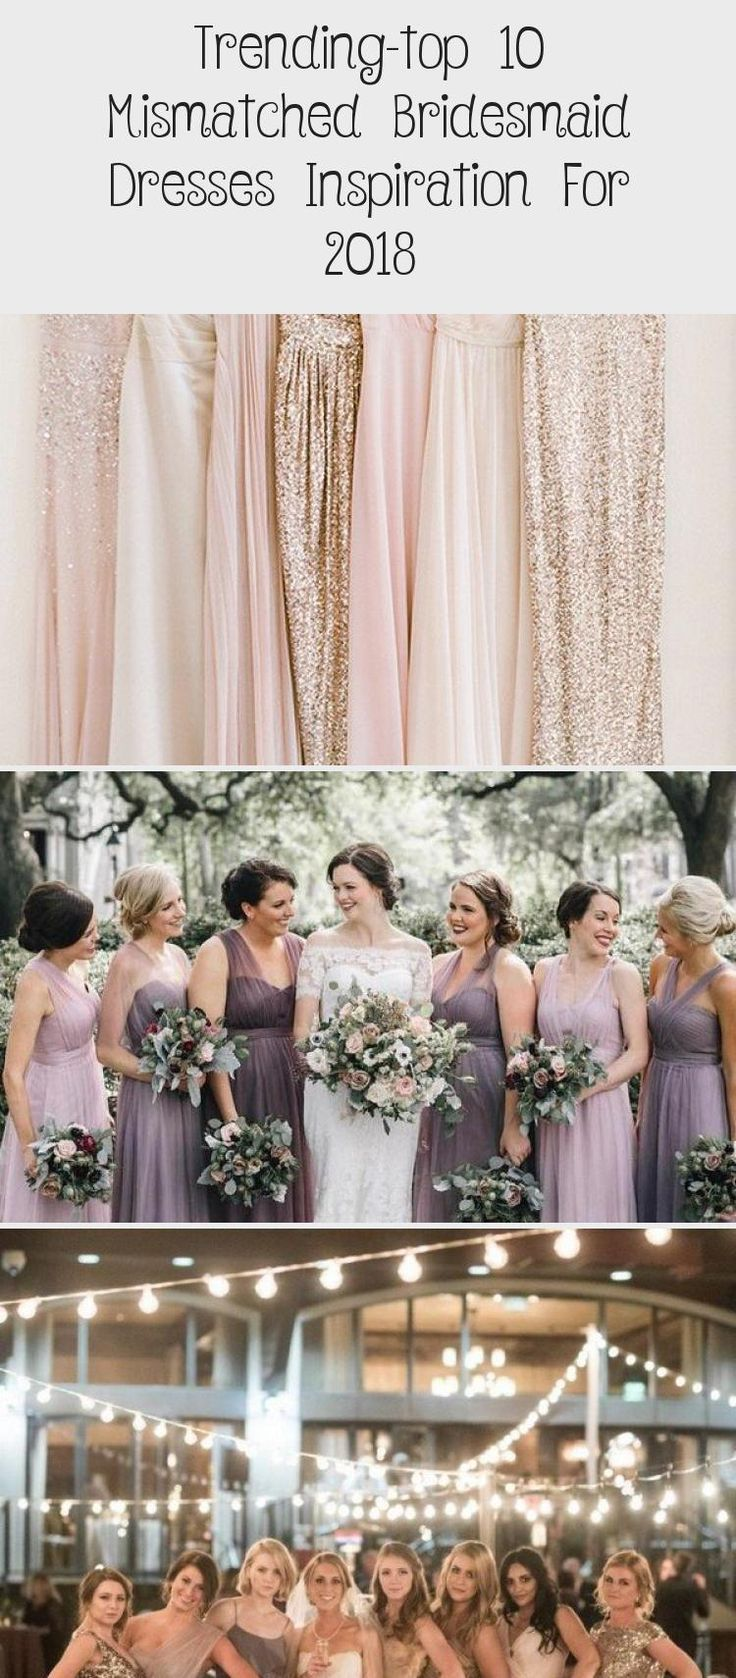 I like doing different color dresses and playing with the greys, blues, and purples. I think the different color greys is really pretty. #DifferentBridesmaidDresses #BridesmaidDressesIndian #RedBridesmaidDresses #BridesmaidDressesMint #MaroonBridesmaidDresses